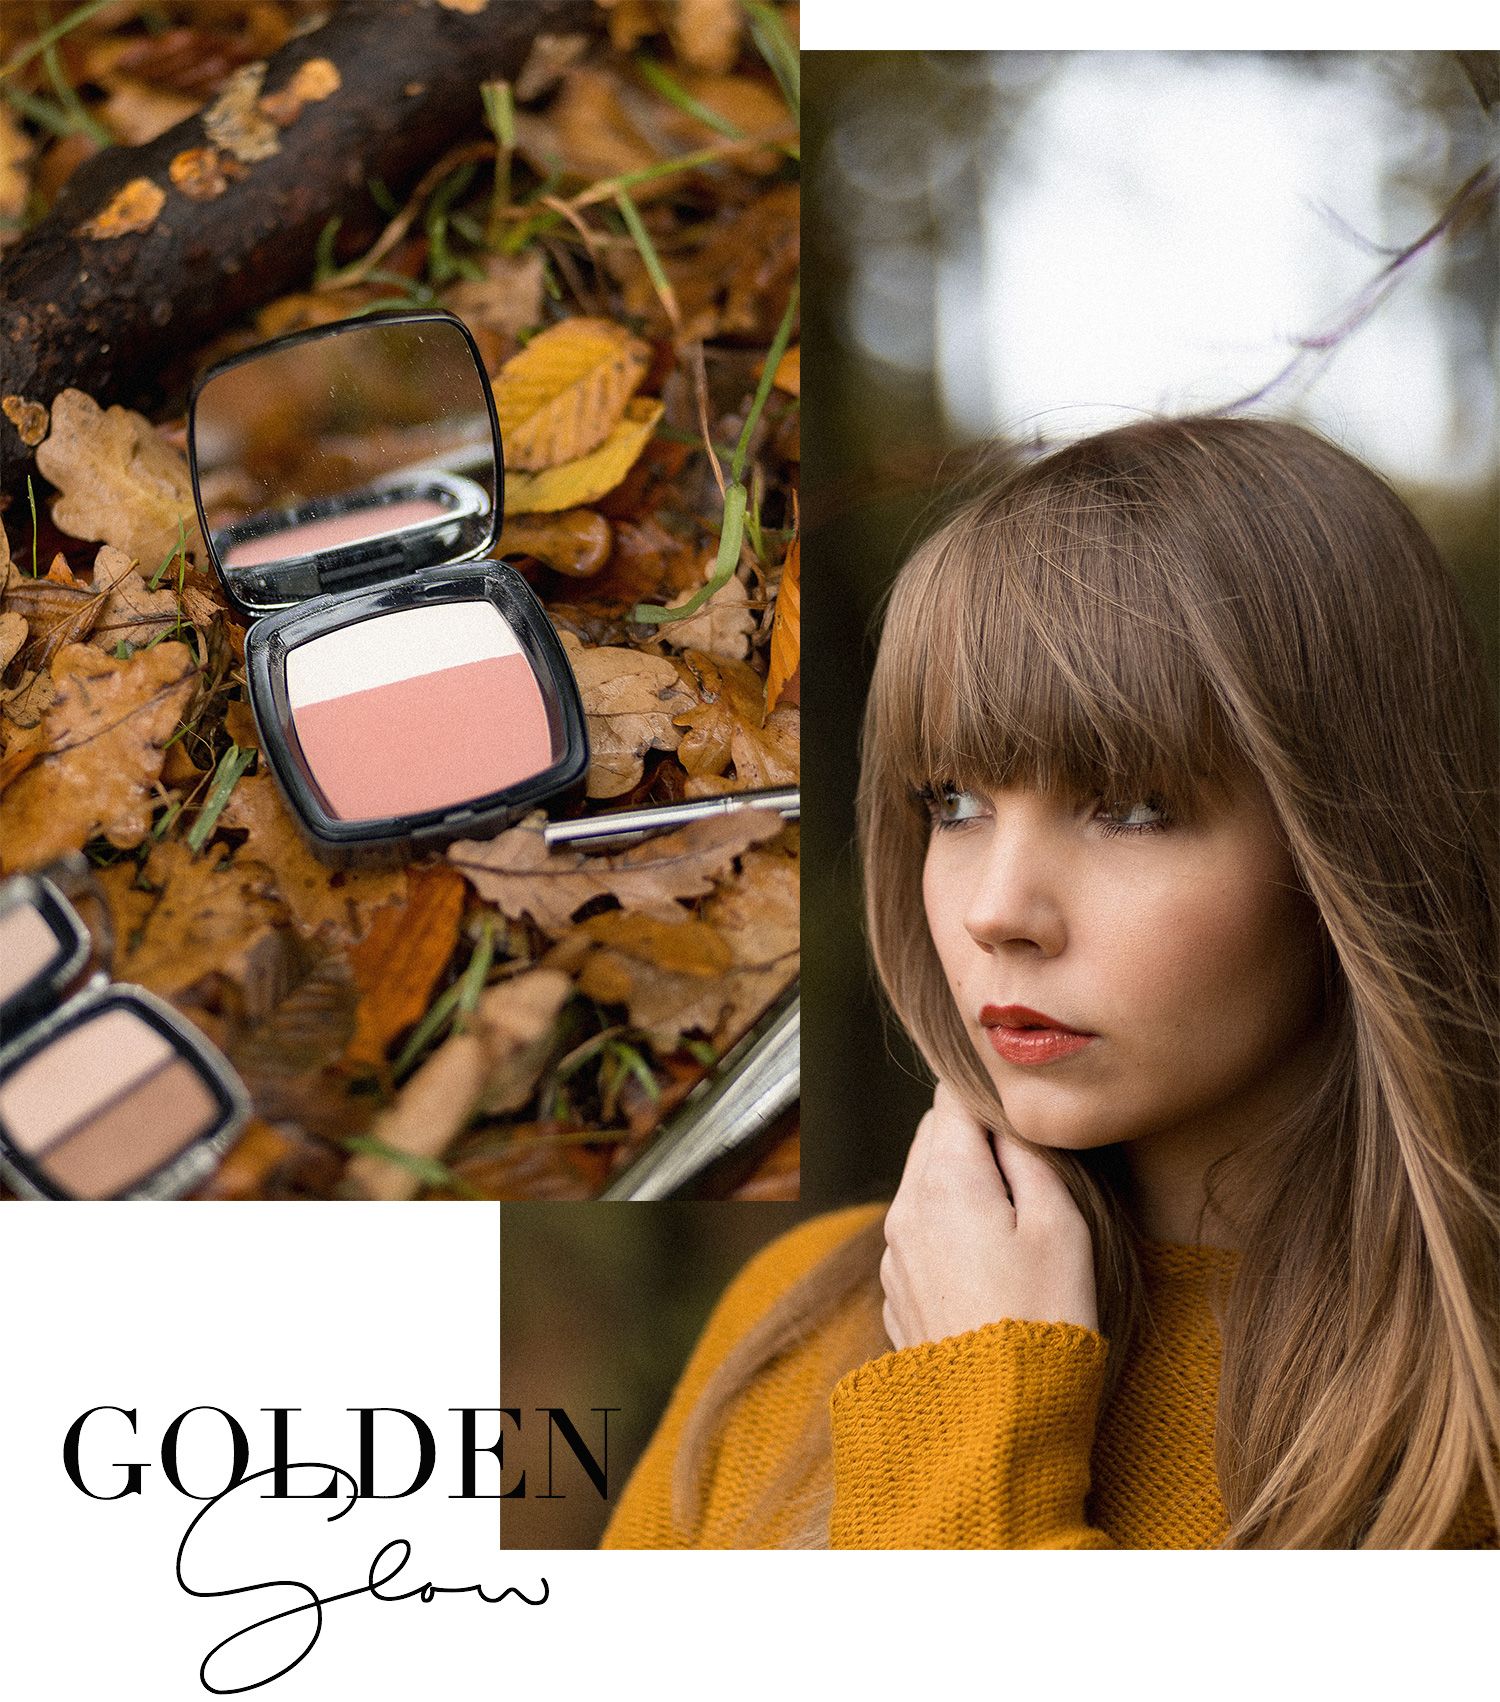 Reviderm Make Up für den Herbst, Golden Glow, Reviderm Make Up Erfahrungen, bezauberndenana.de